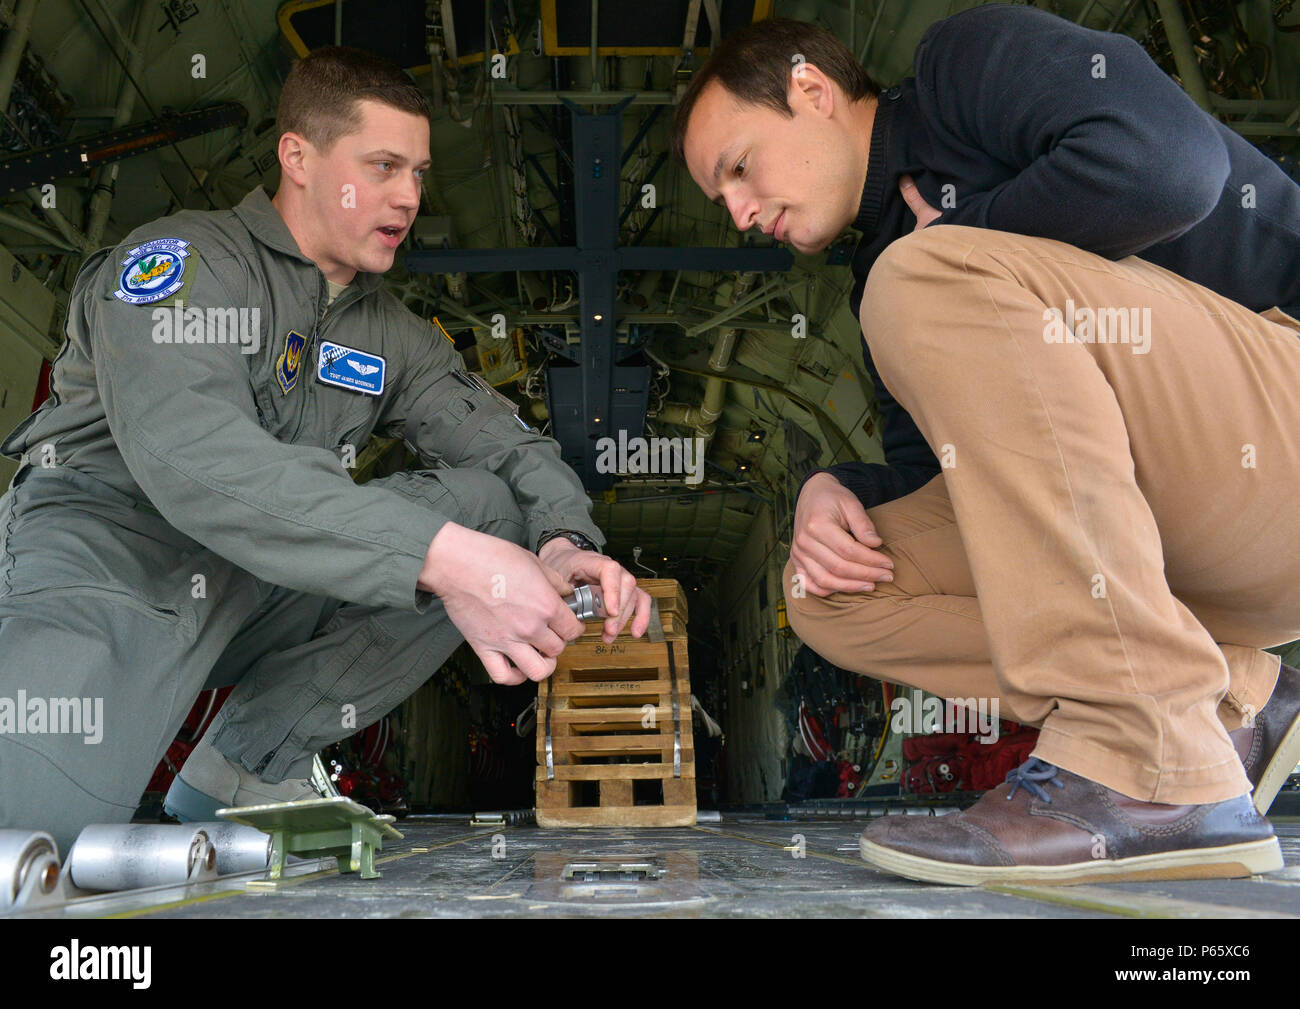 Tech. Sgt. James Moenning, 37th Airlift Squadron evaluator loadmaster and Pierre Yves, a French military contractor, evaluate a C-130J Super Hercules April 28, 2016, at Ramstein Air Base, Germany. Representatives from the French air force visited Ramstein Air Base to survey a C-130J Super Hercules and familiarize themselves with the aircraft and its capabilities. (U.S. Air Force Photo/ Airman 1st Class Lane Plummer) - Stock Image